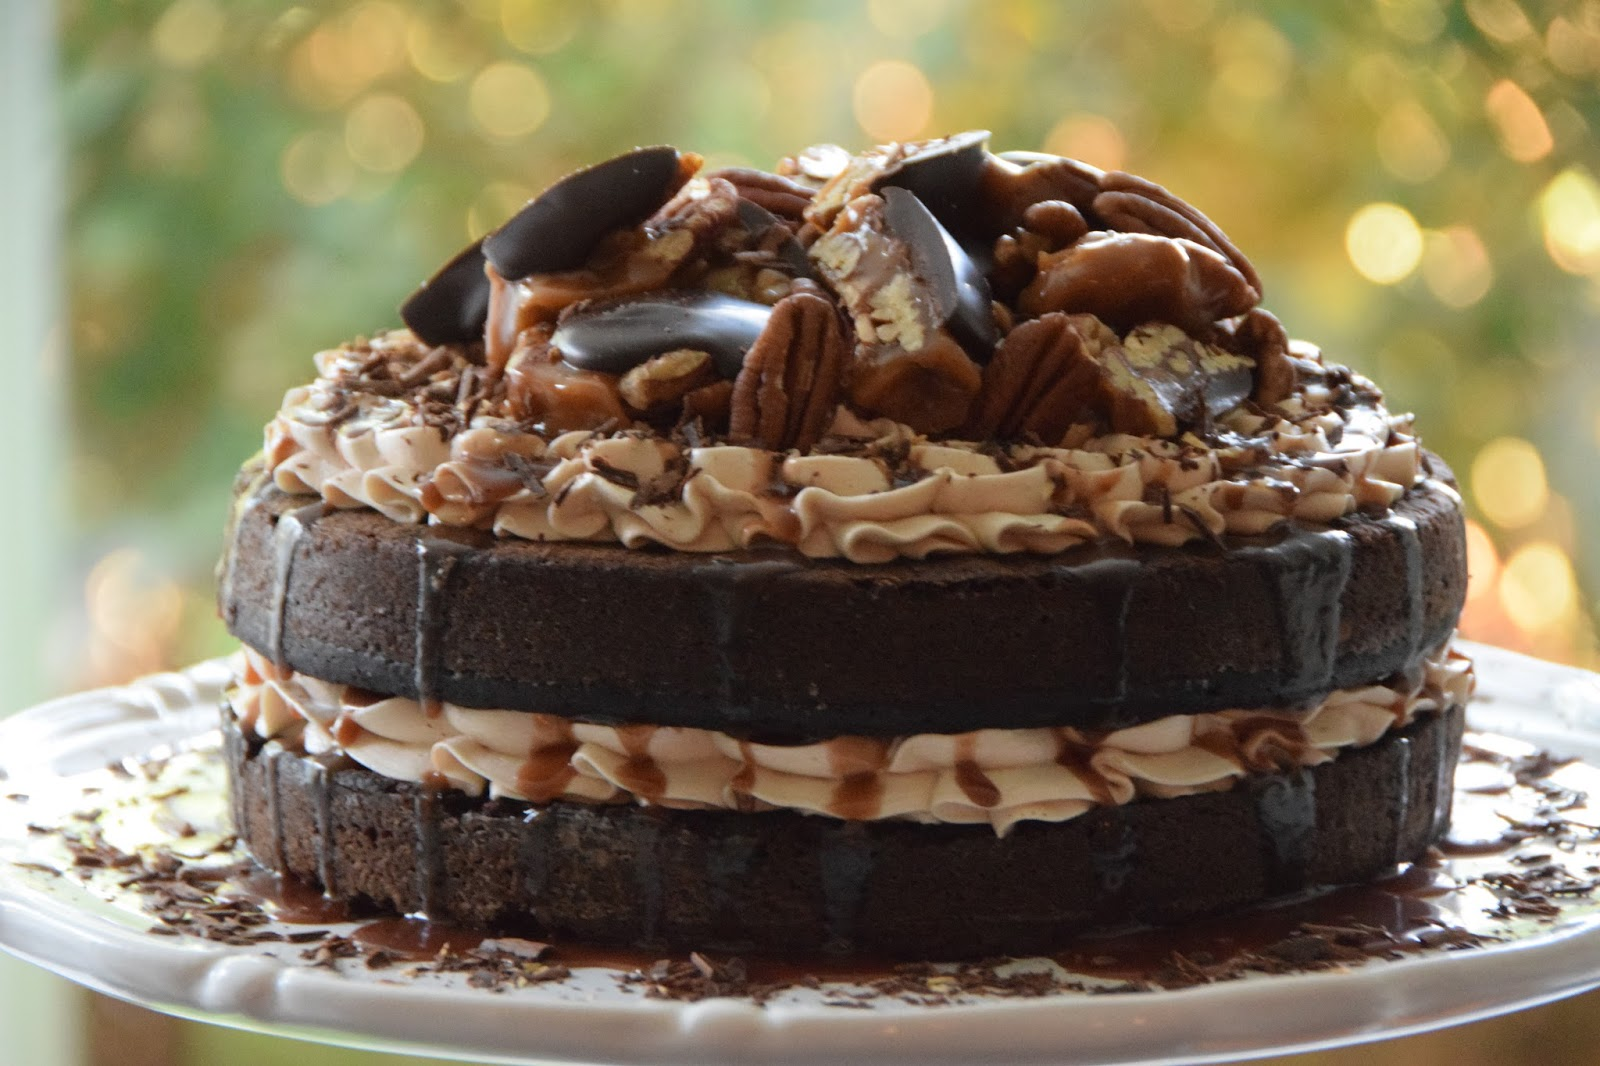 Easy Homemade Chocolate Turtle Cake: Fueling With Flavour: Chocolate Turtle Cake (Project 150721